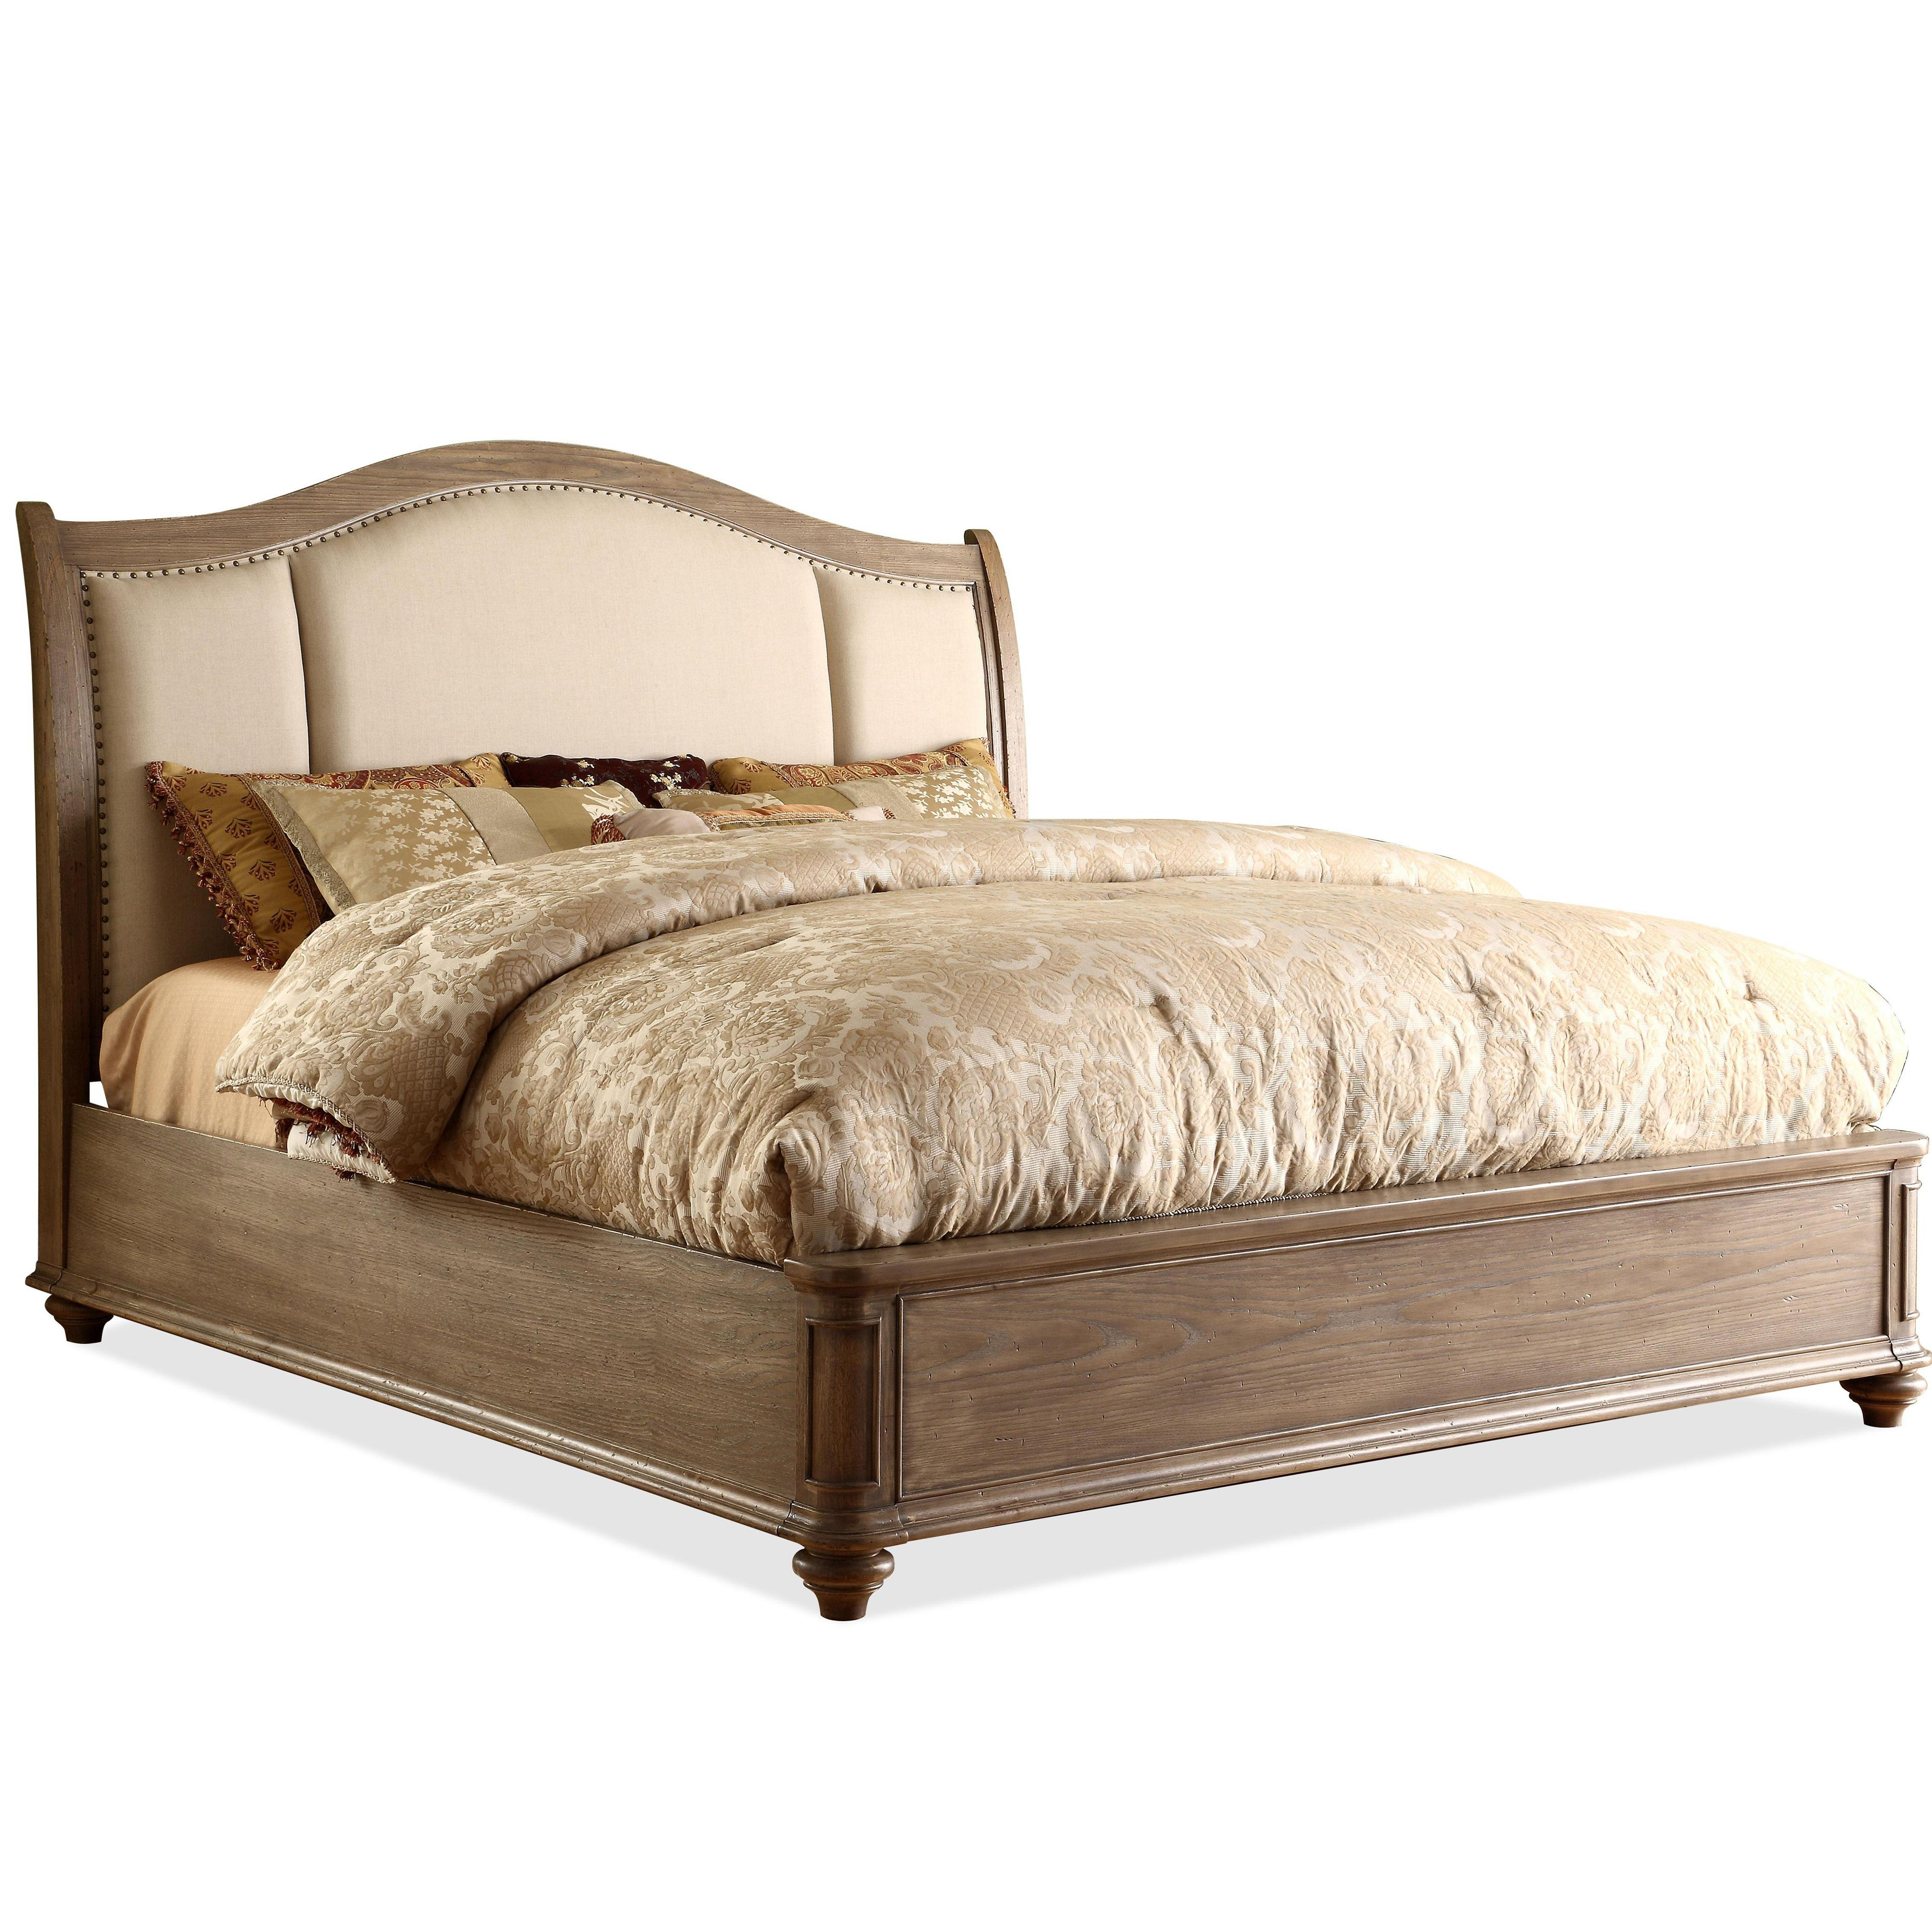 King Upholstered Sleigh Headboard Bed With Nail Head Trim By Riverside Furniture Wolf And